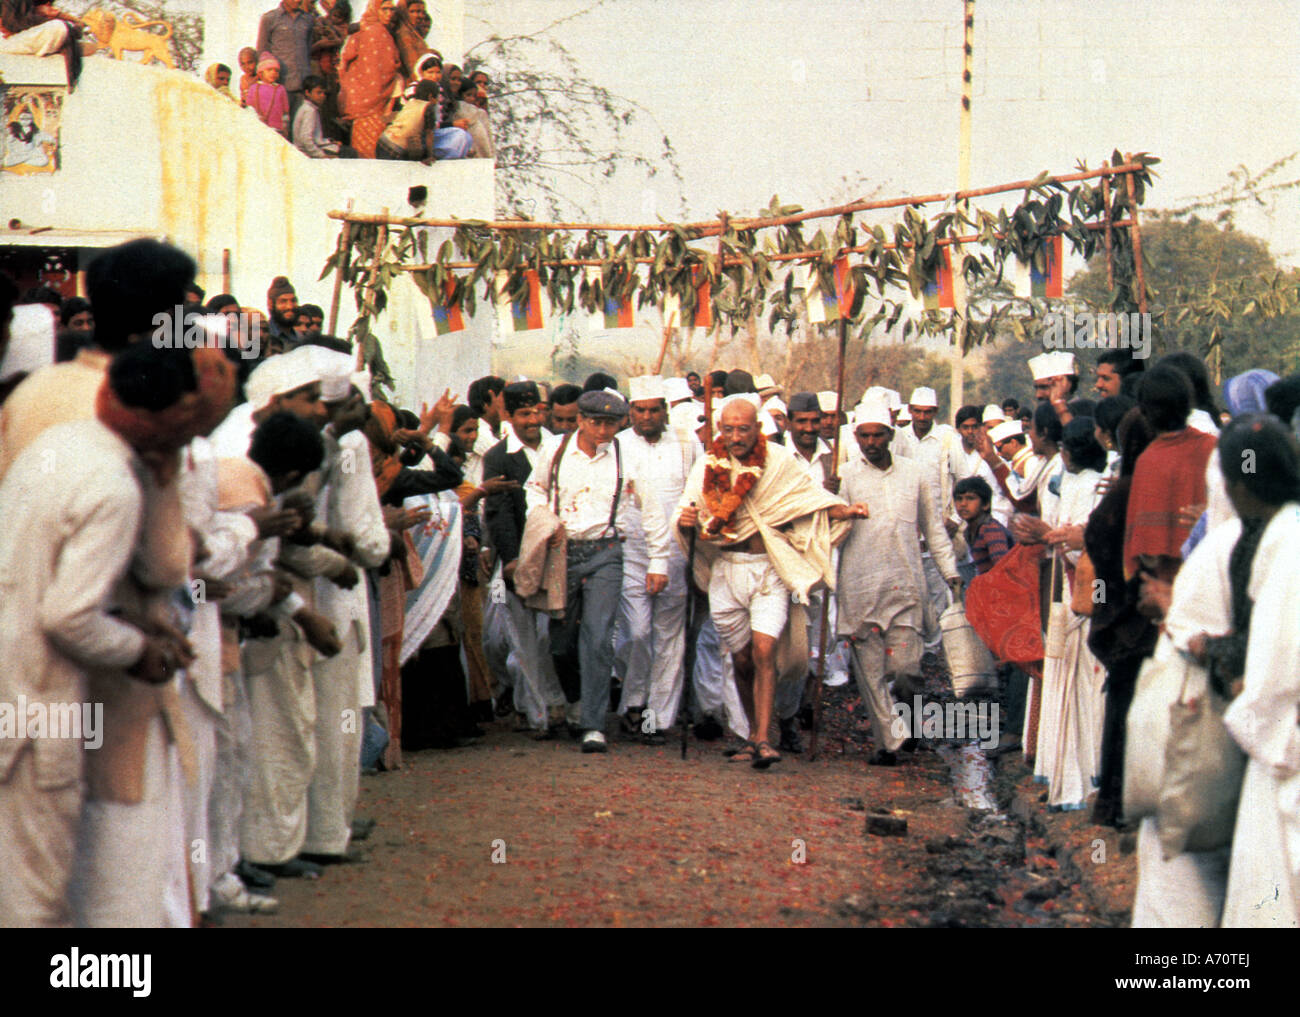 GANDHI 1982 Columbia/Goldcrest film with Ben Kingsley as Mahatma Gandhi - Stock Image